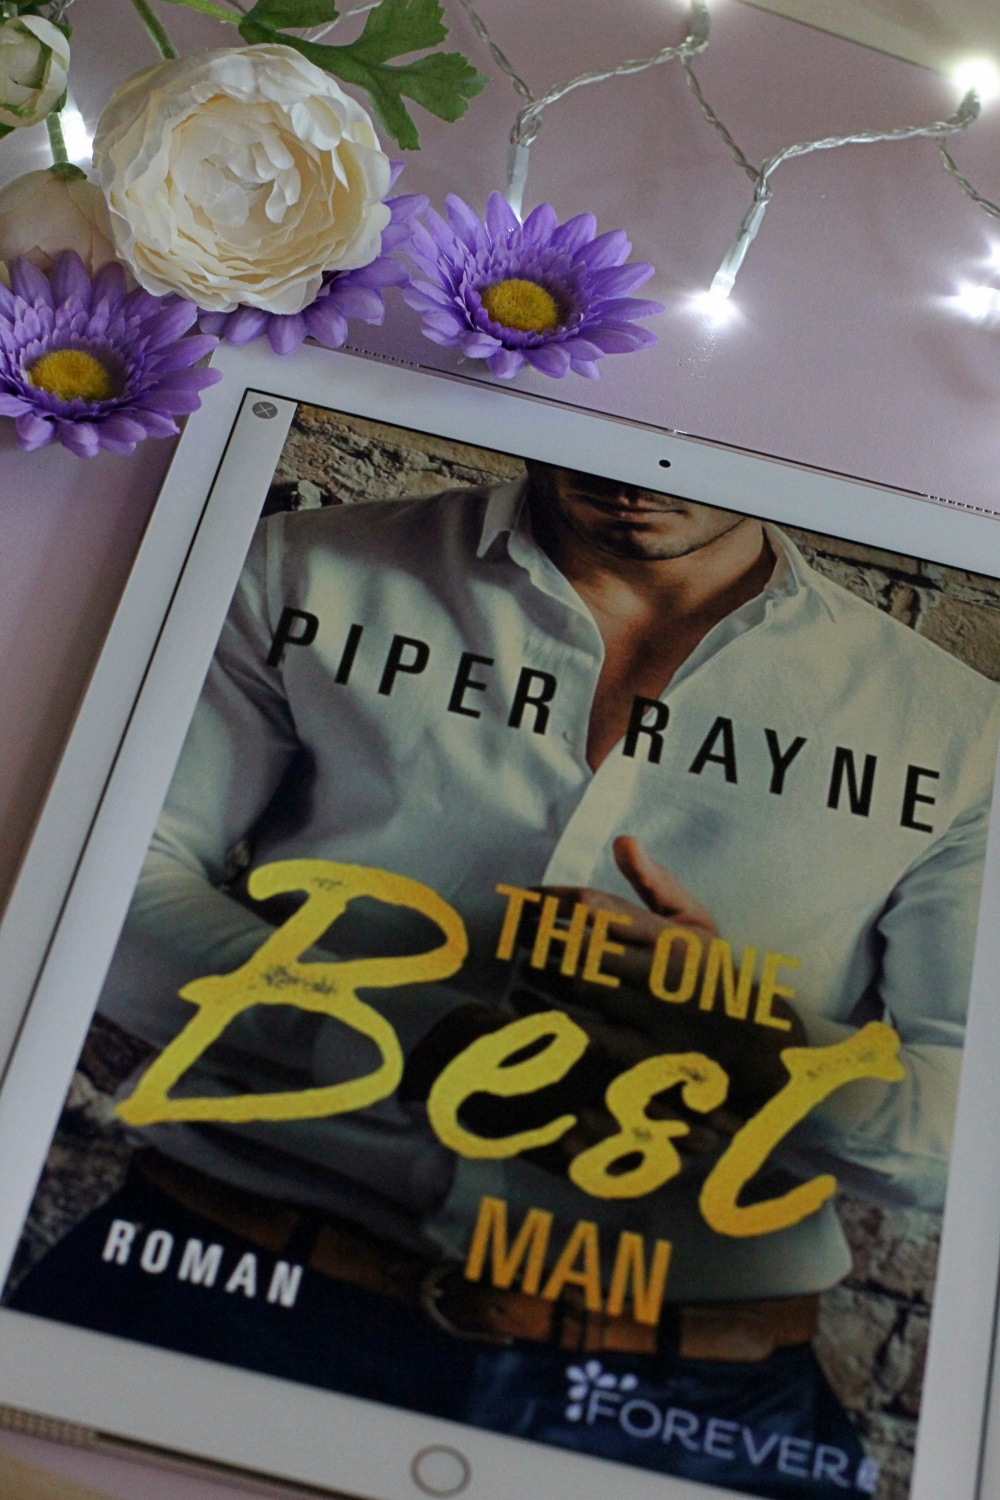 The One Best Man von Piper Rayne